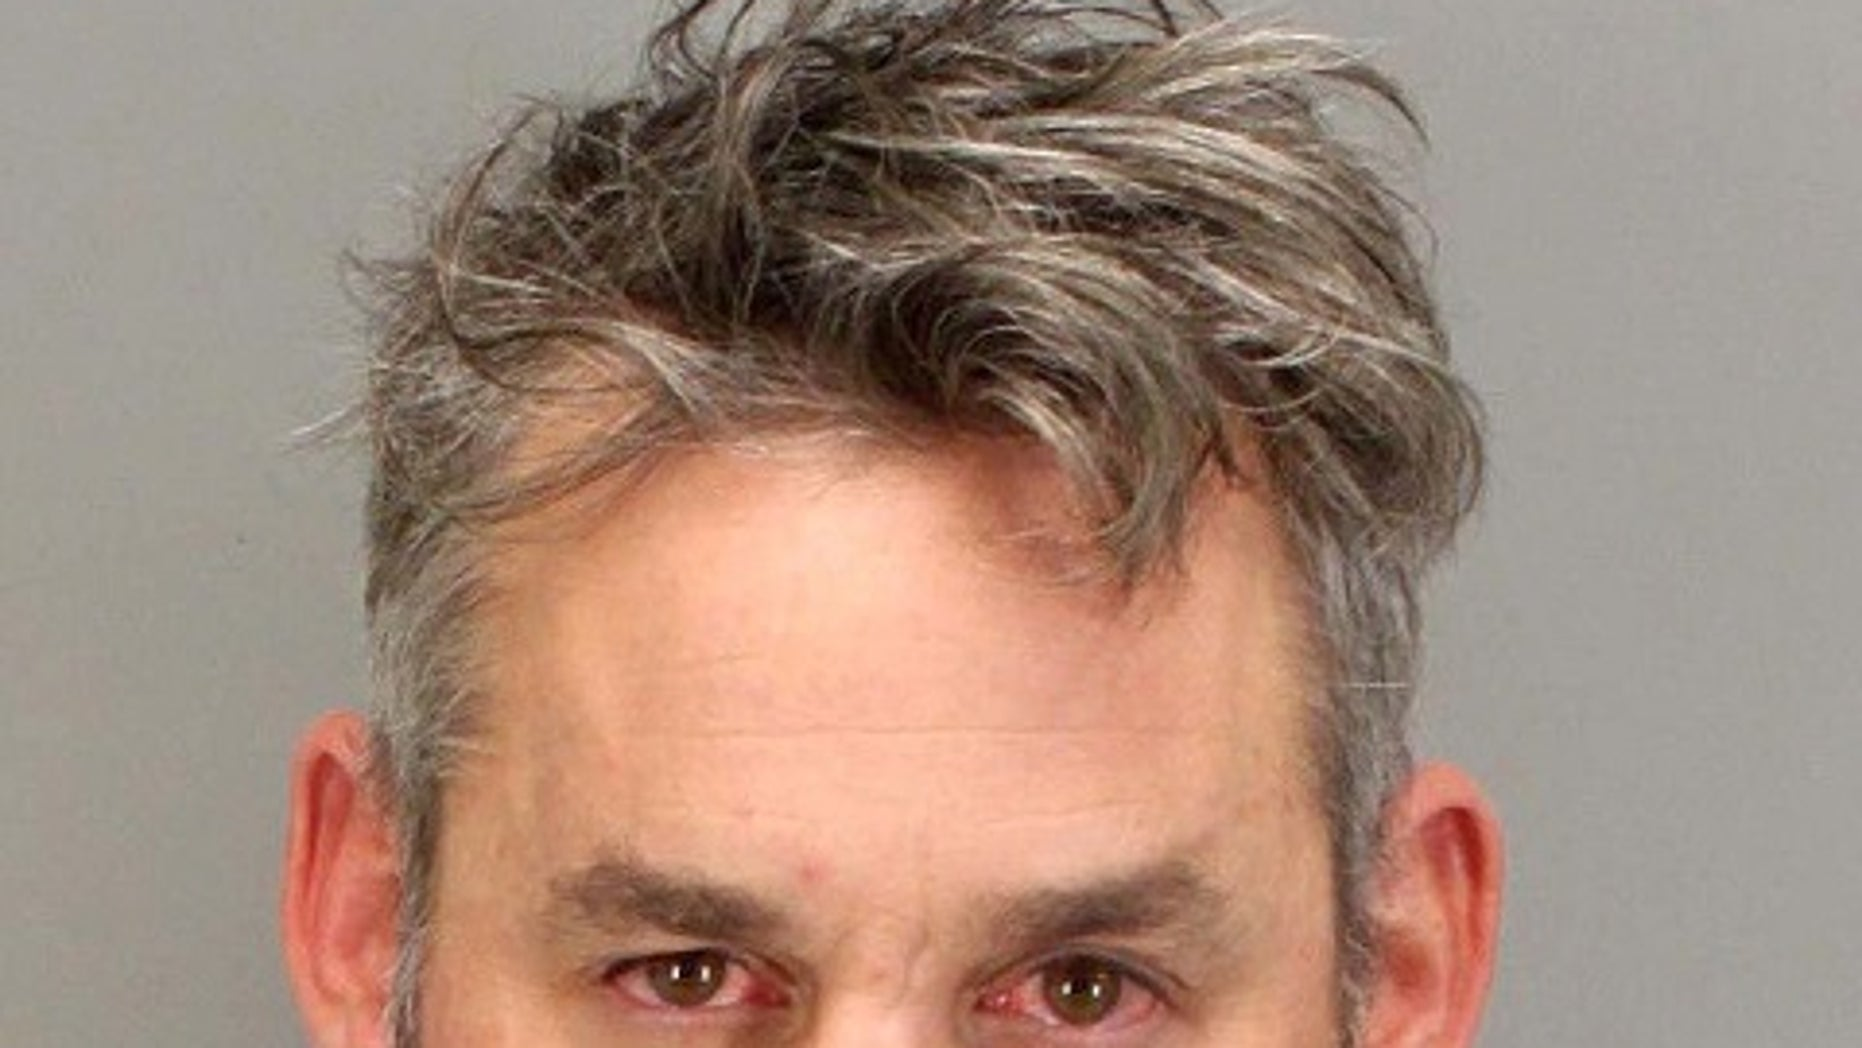 Nicholas Brendon was arrested for domestic violence on Oct. 11, 2017 in Palm Springs, Calif.